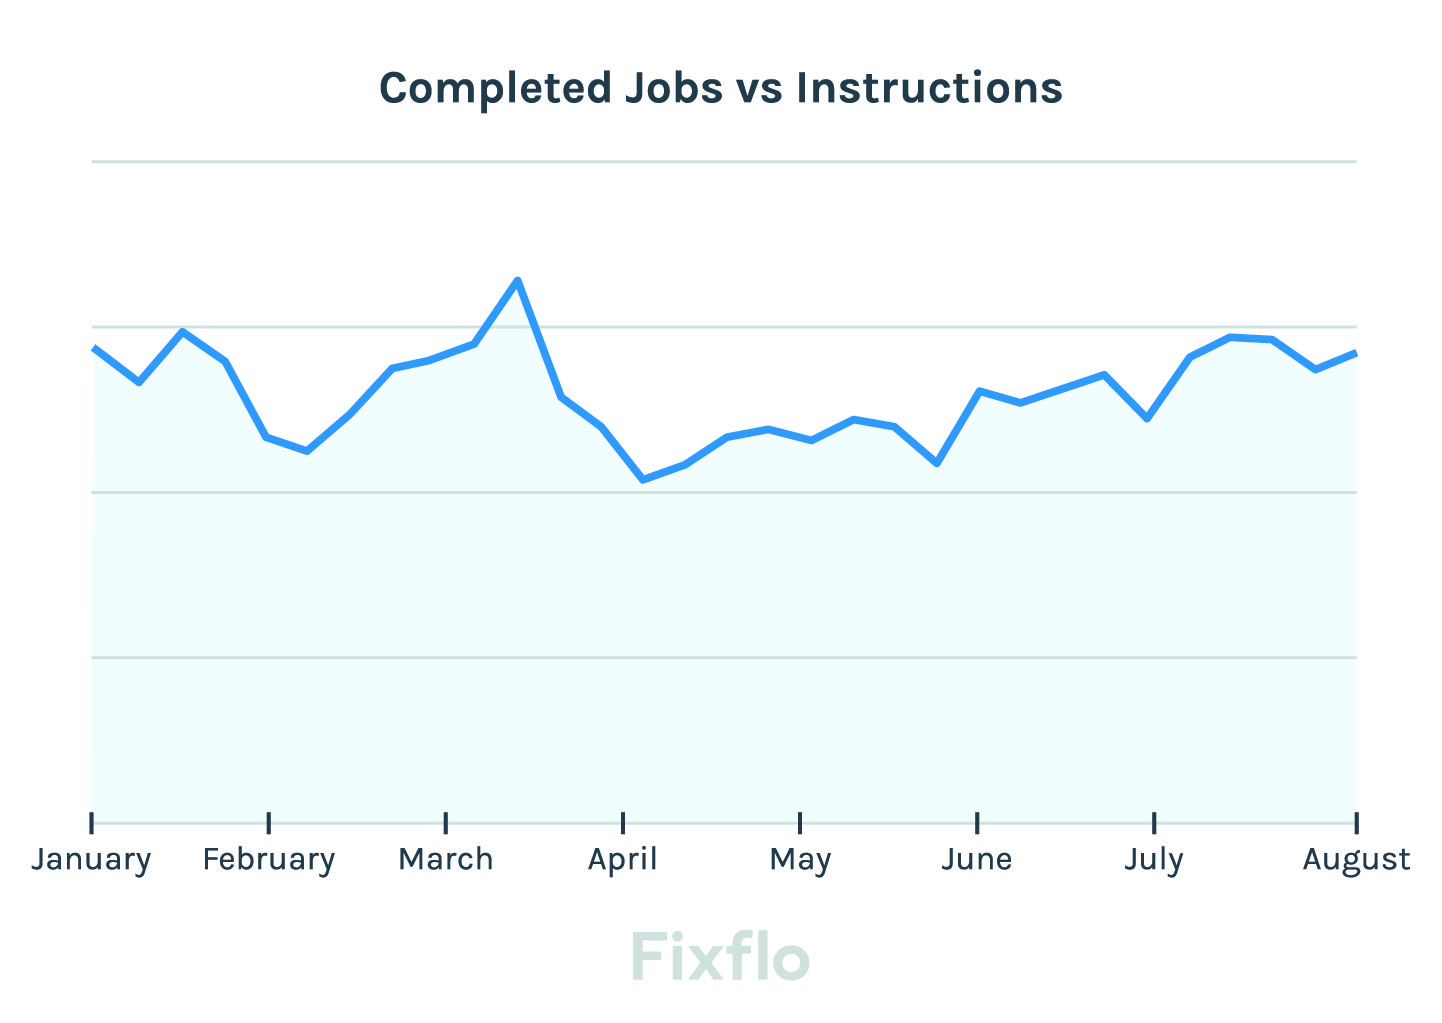 Fixflo_completed jobs vs instructions jan-aug 2020